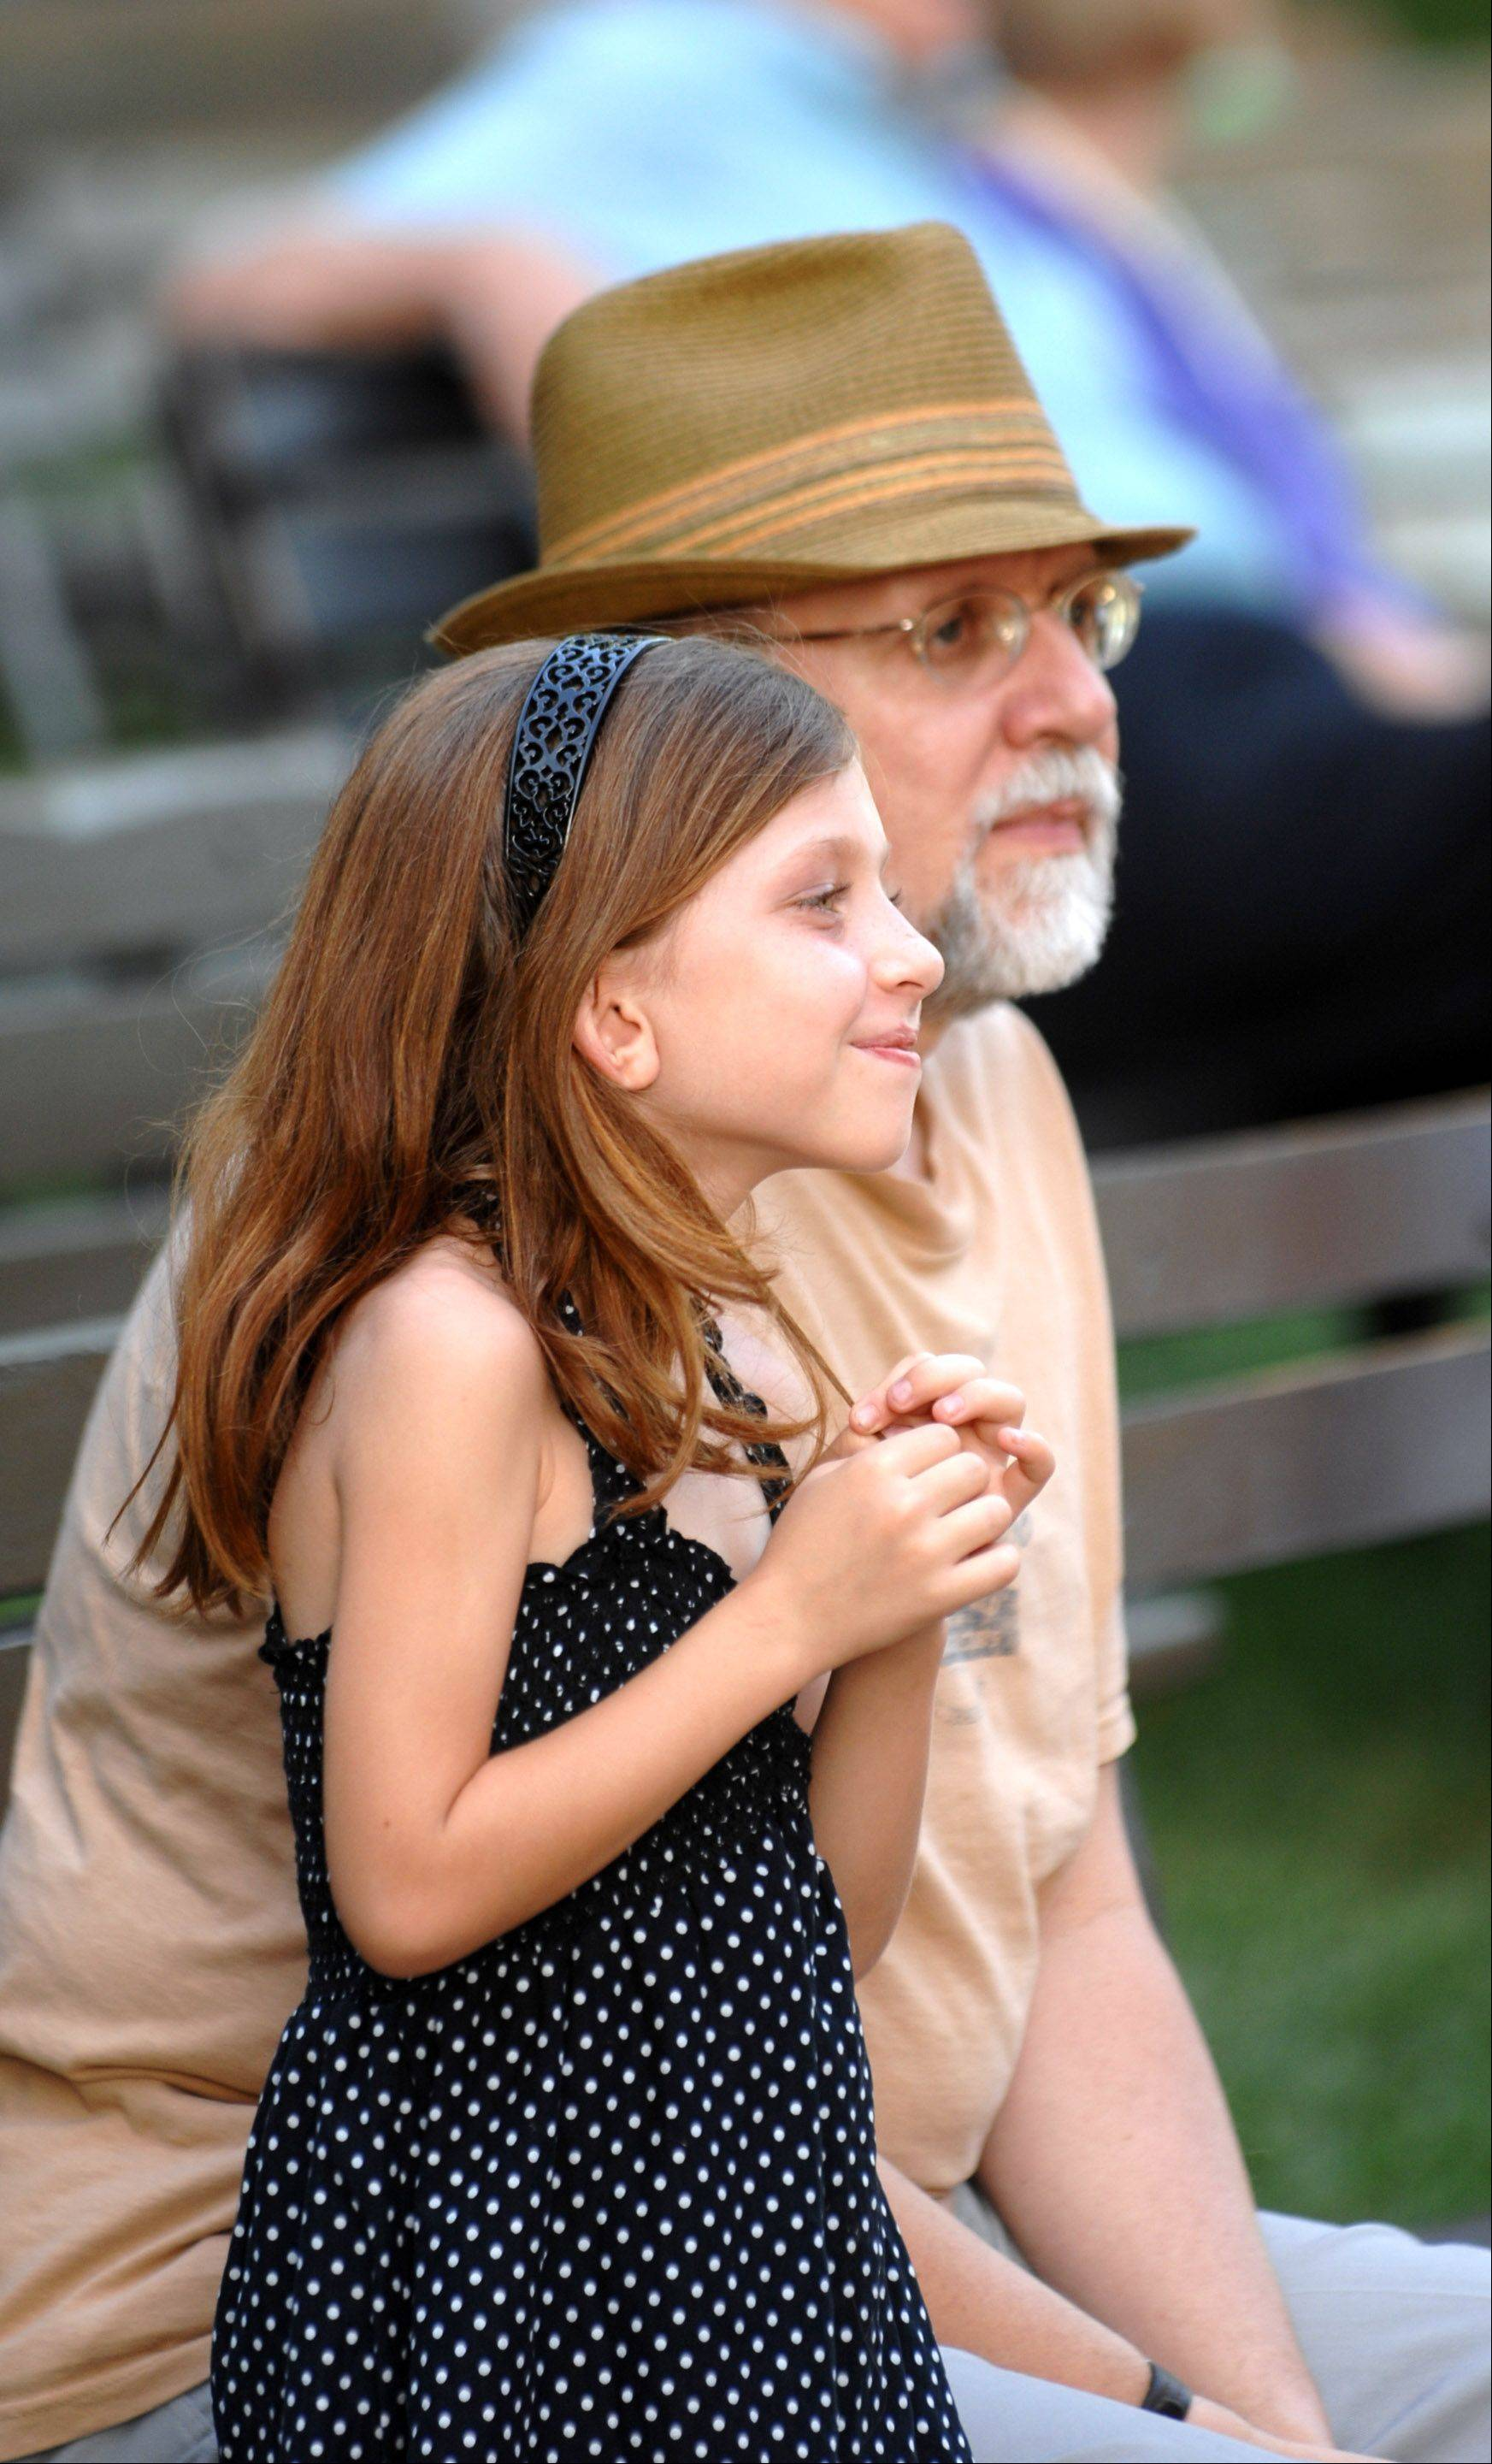 B.J. Slinger and his granddaughter Abigail, 8, both of Wheaton enjoy the show during the 13th annual Wheaton Band Festival at Memorial Park Friday in Wheaton. Well over 200 people took part in this event.